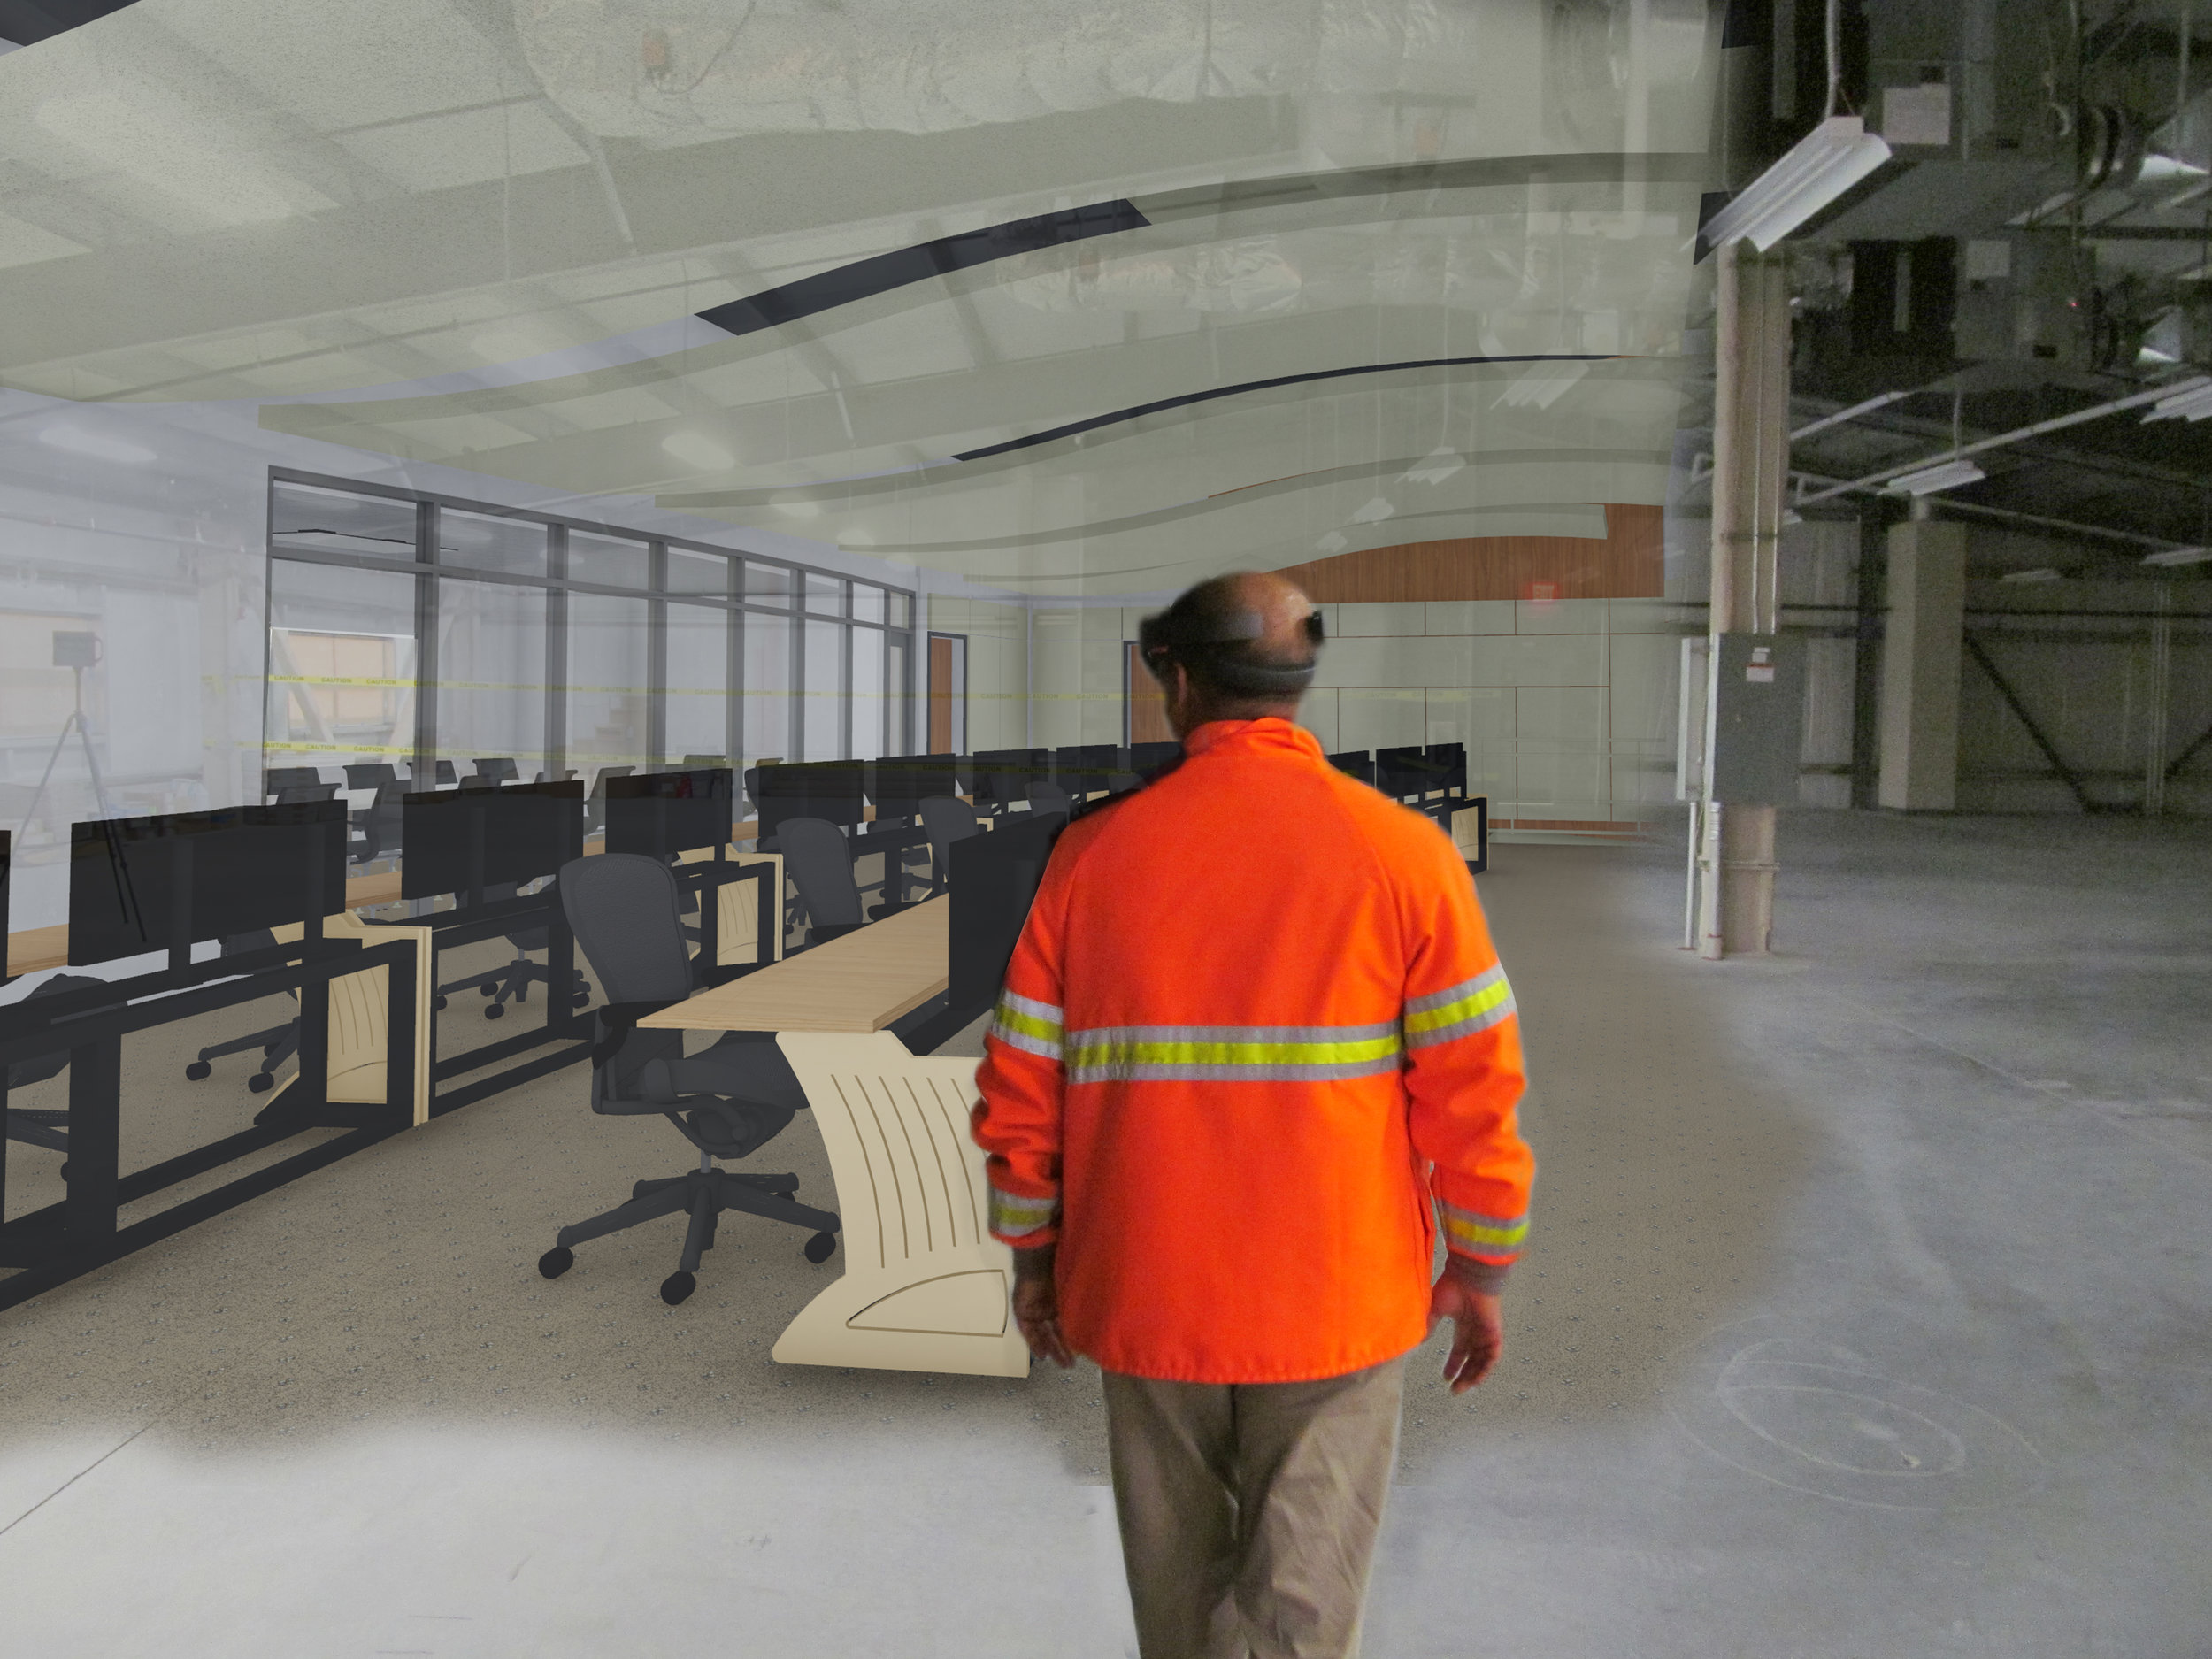 A conceptual montage to illustrate the hologram of a new MTA B&T interior architecture as seen through the HoloLens.